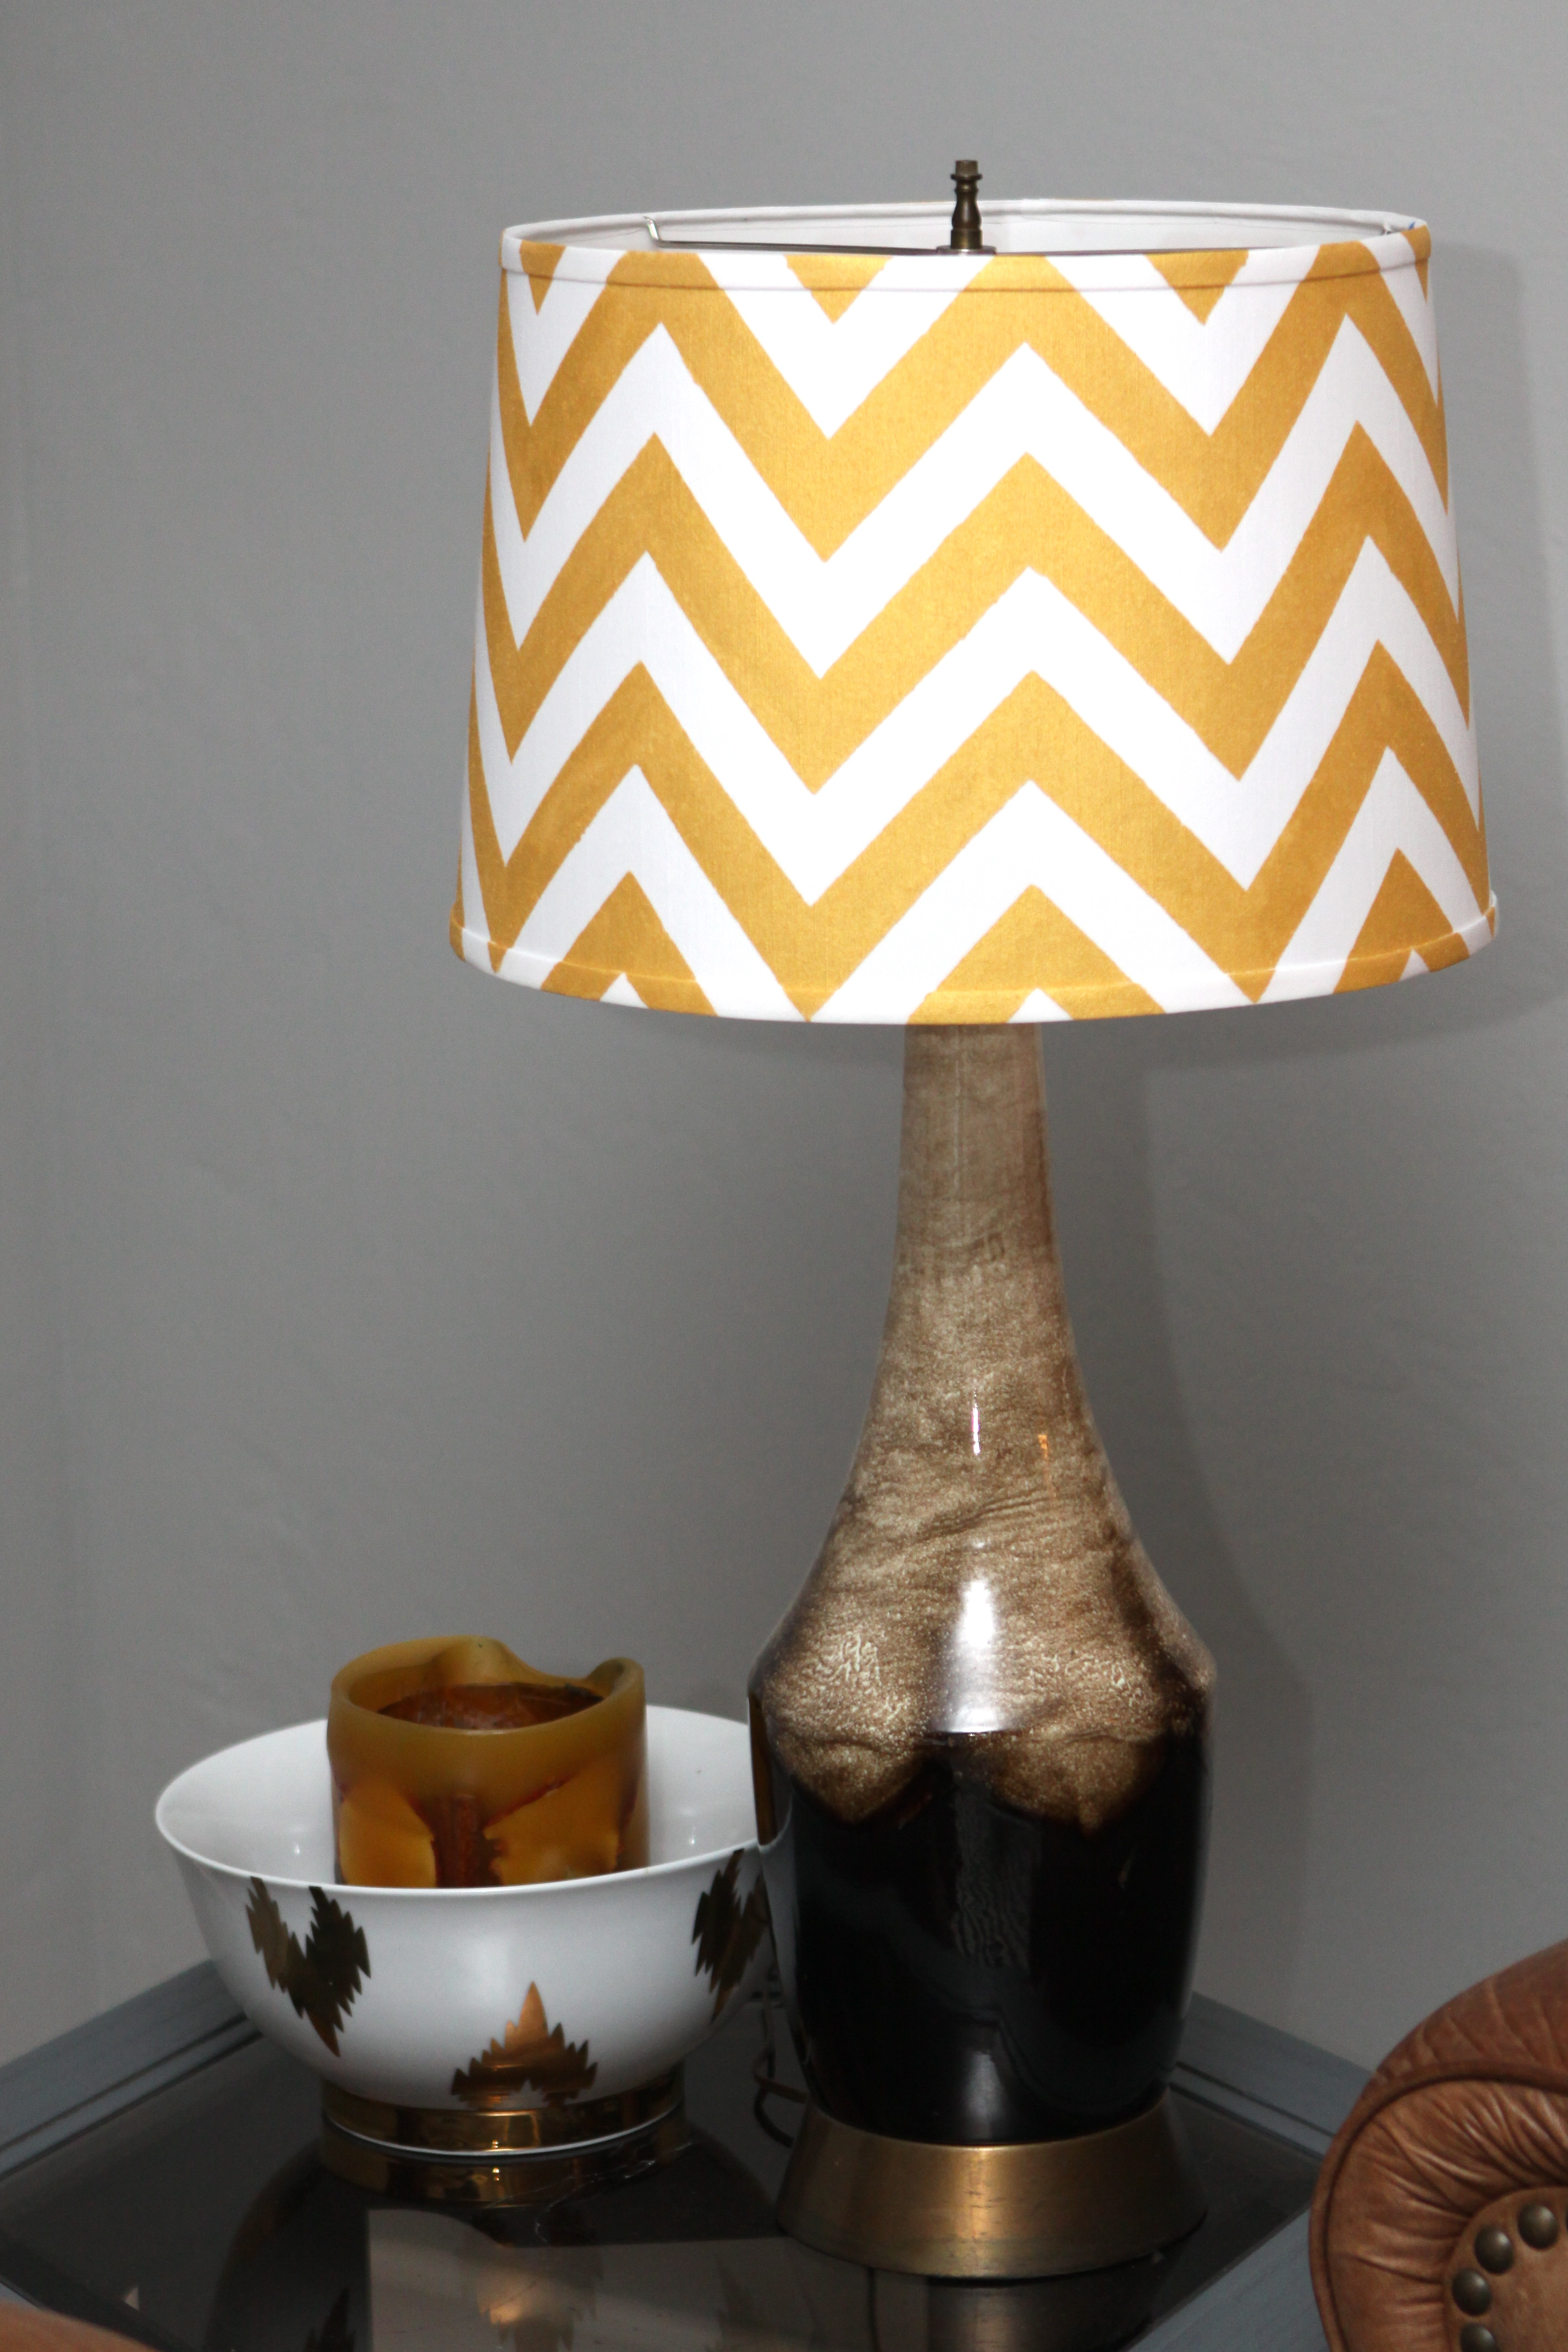 Chevron lamp shade diy pomp and circumstance advertisements mozeypictures Image collections